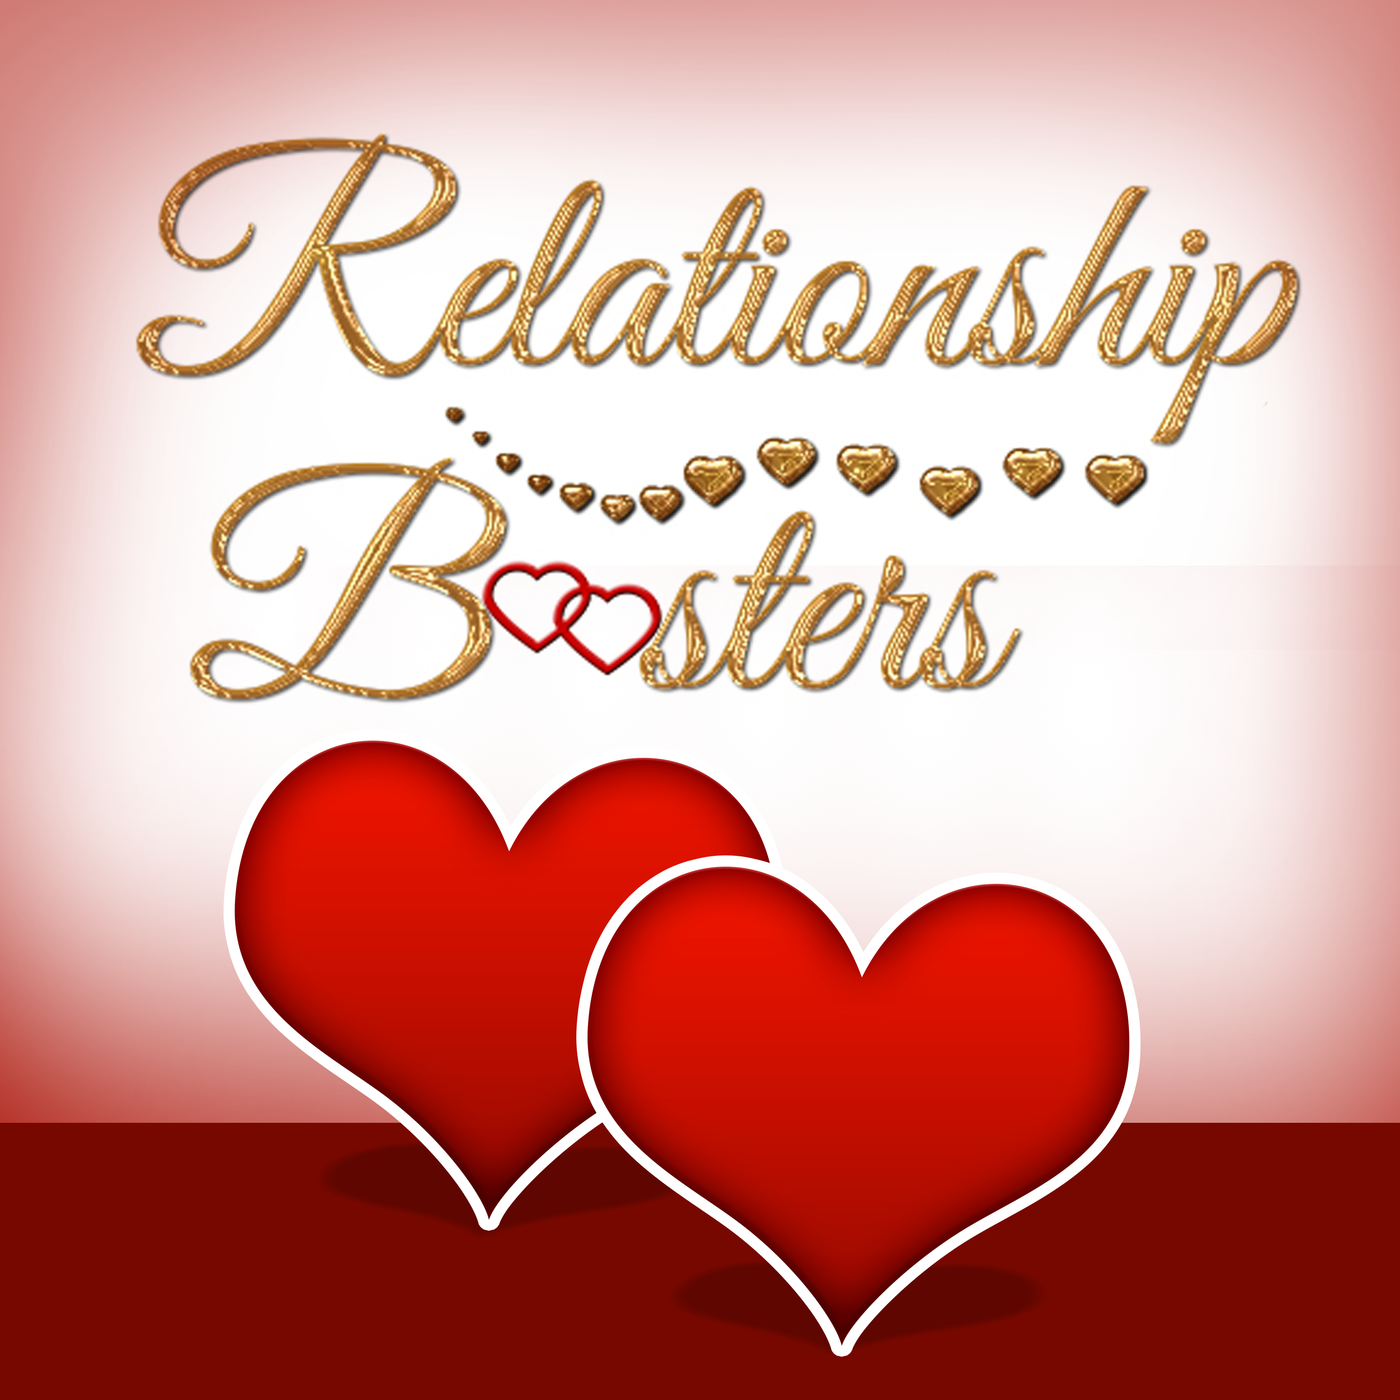 Relationship Boosters | Couples | Marriage | Intimacy| Love | Family | Counseling | Marriage Advice | Healthy Marriage show art